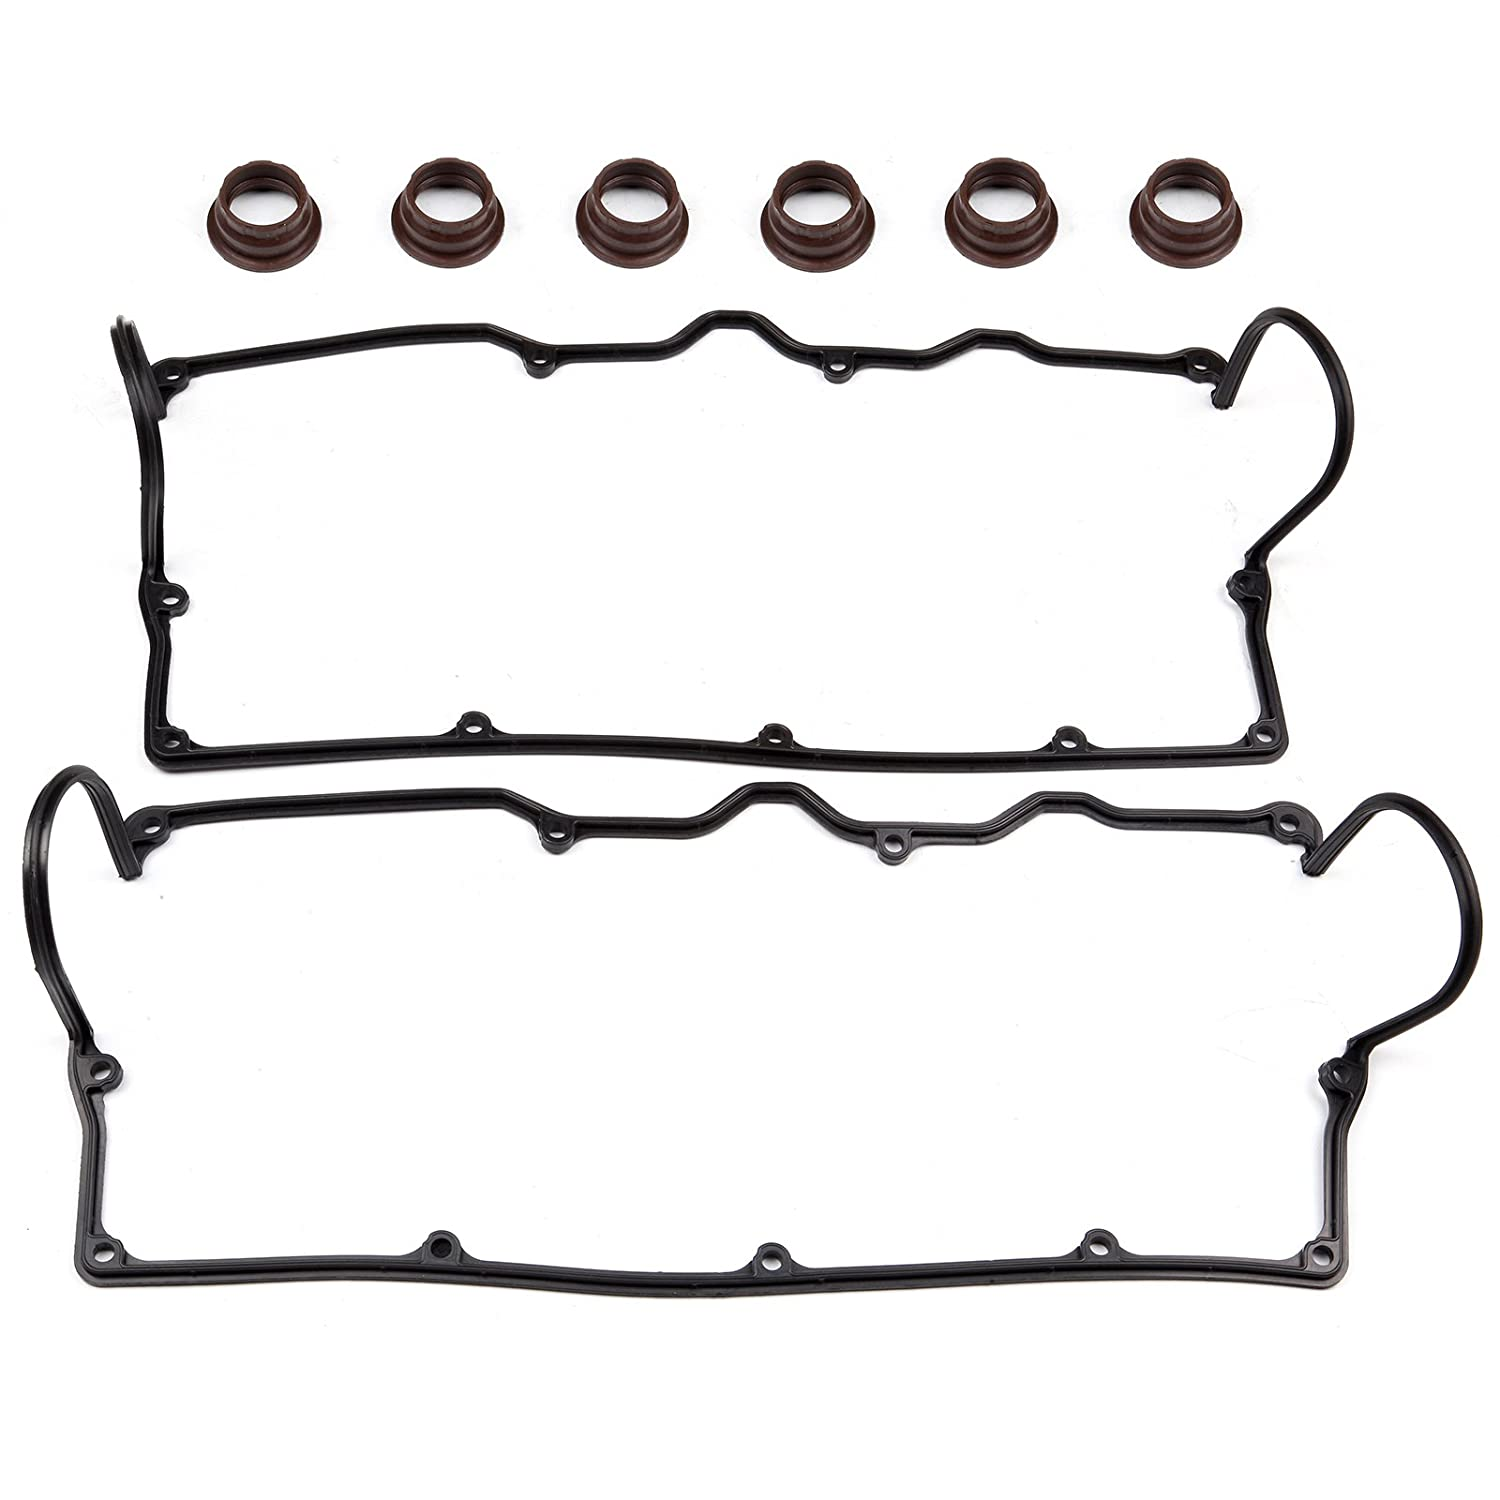 6VD1 SCITOO Valve Cover Gasket fit 1994-1997 Honda Passport 1992-1997 Isuzu Trooper 3.2L SOHC Eng